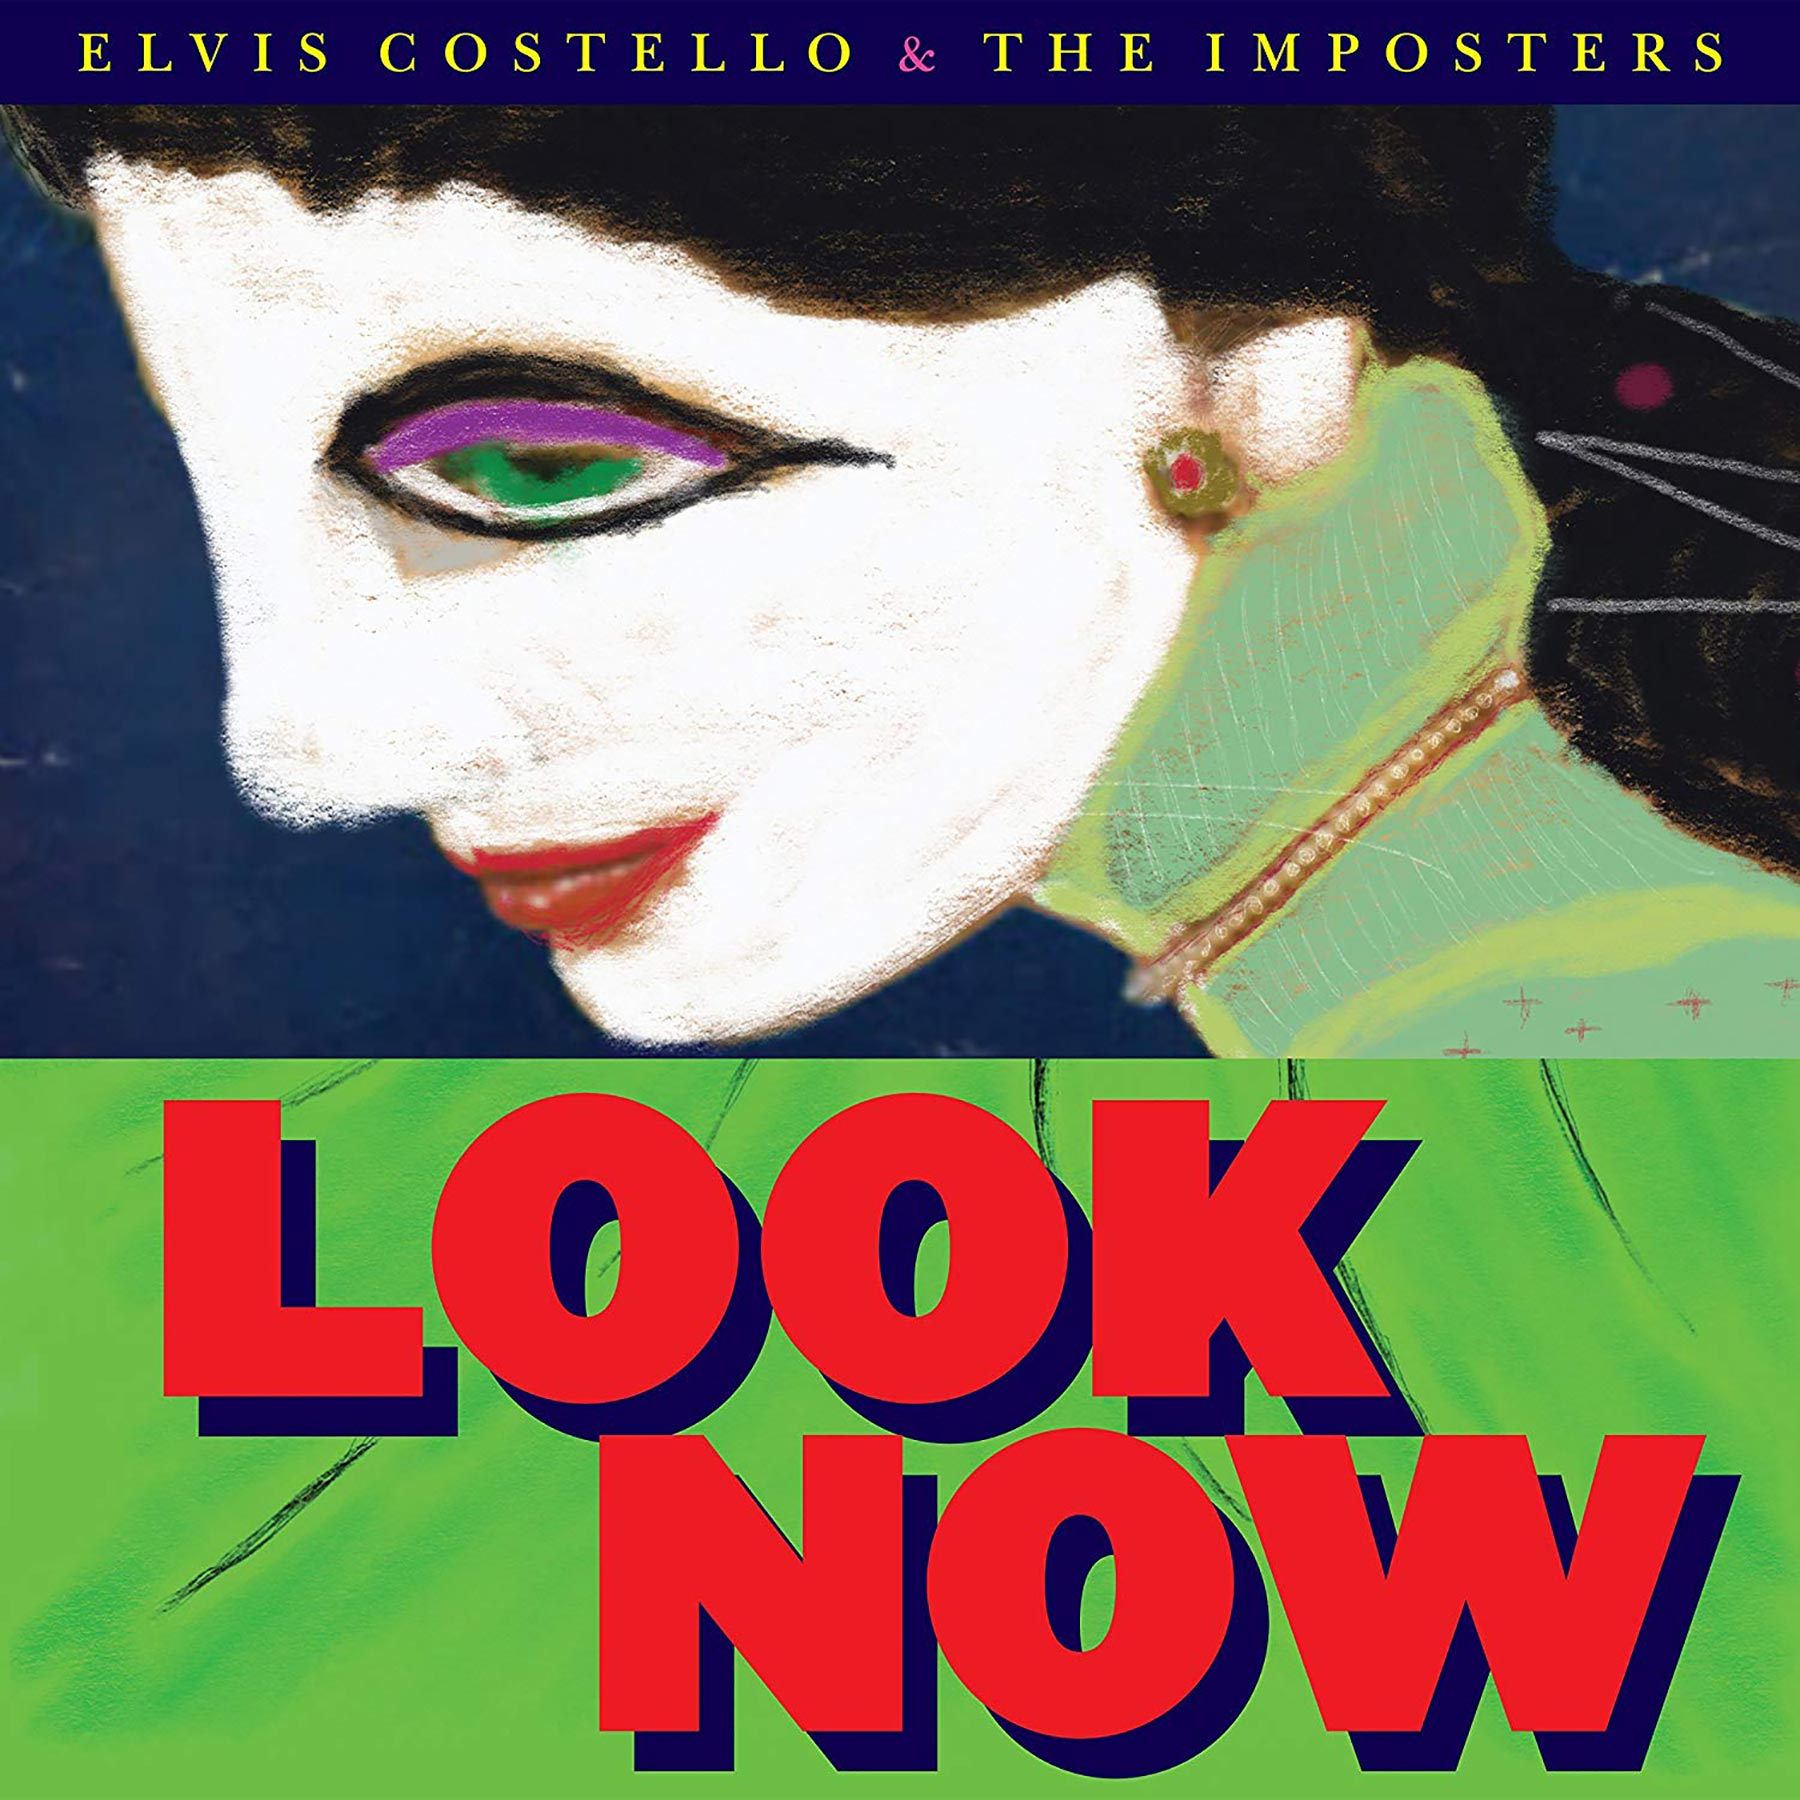 Elvis Costello & the Imposters, Look NowCR: Concord Records